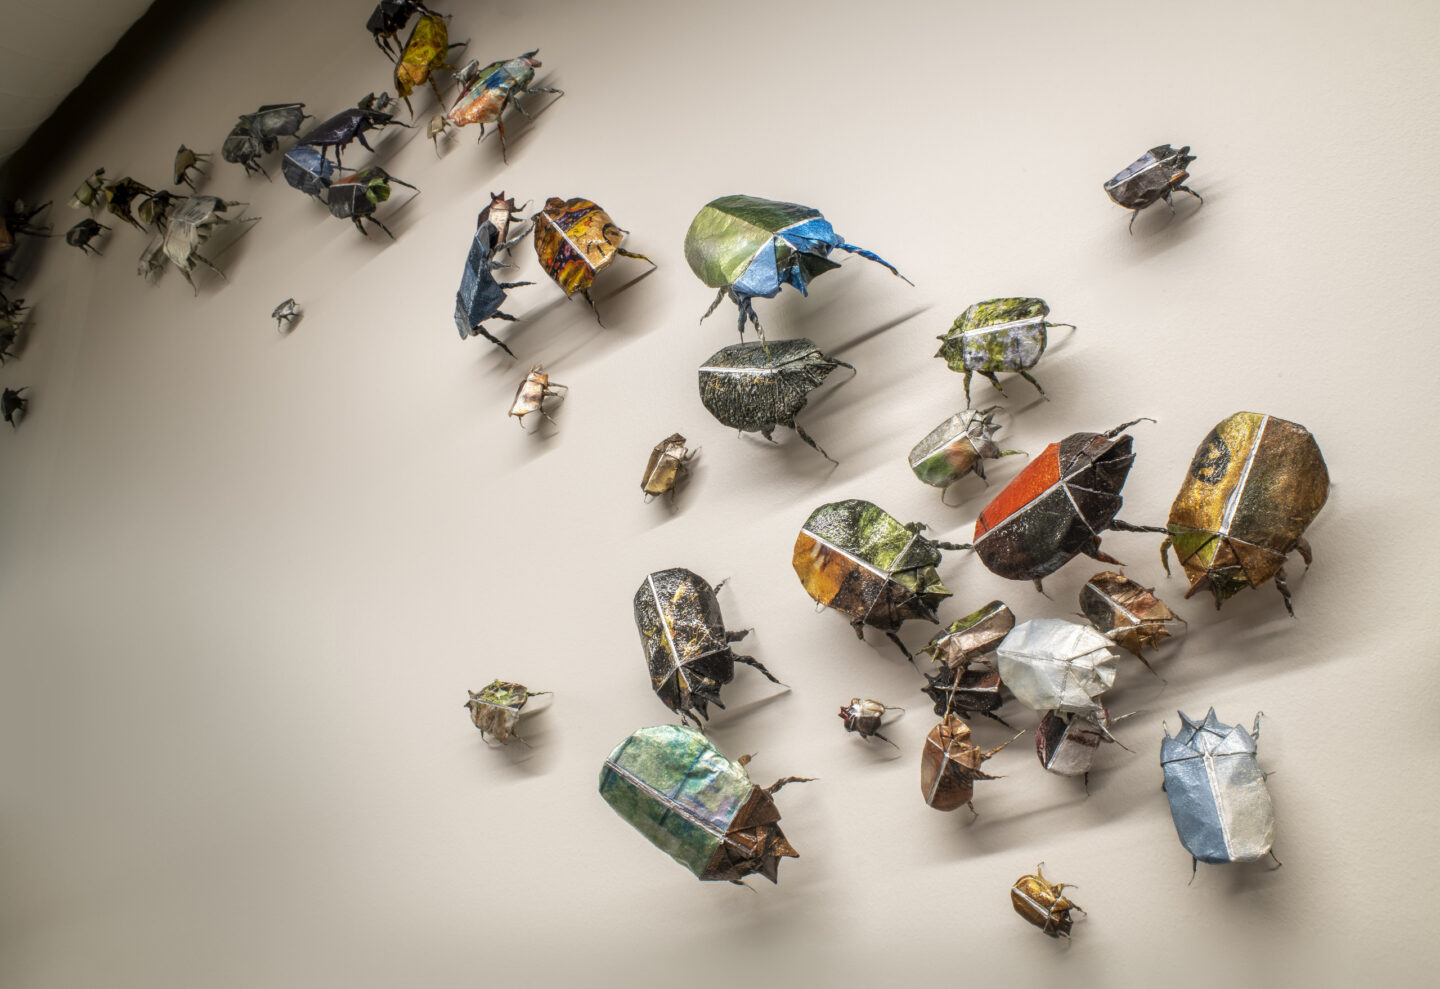 Detail of installation of origami beetles of different colors, designs, and sizes in varied positions on a wall.